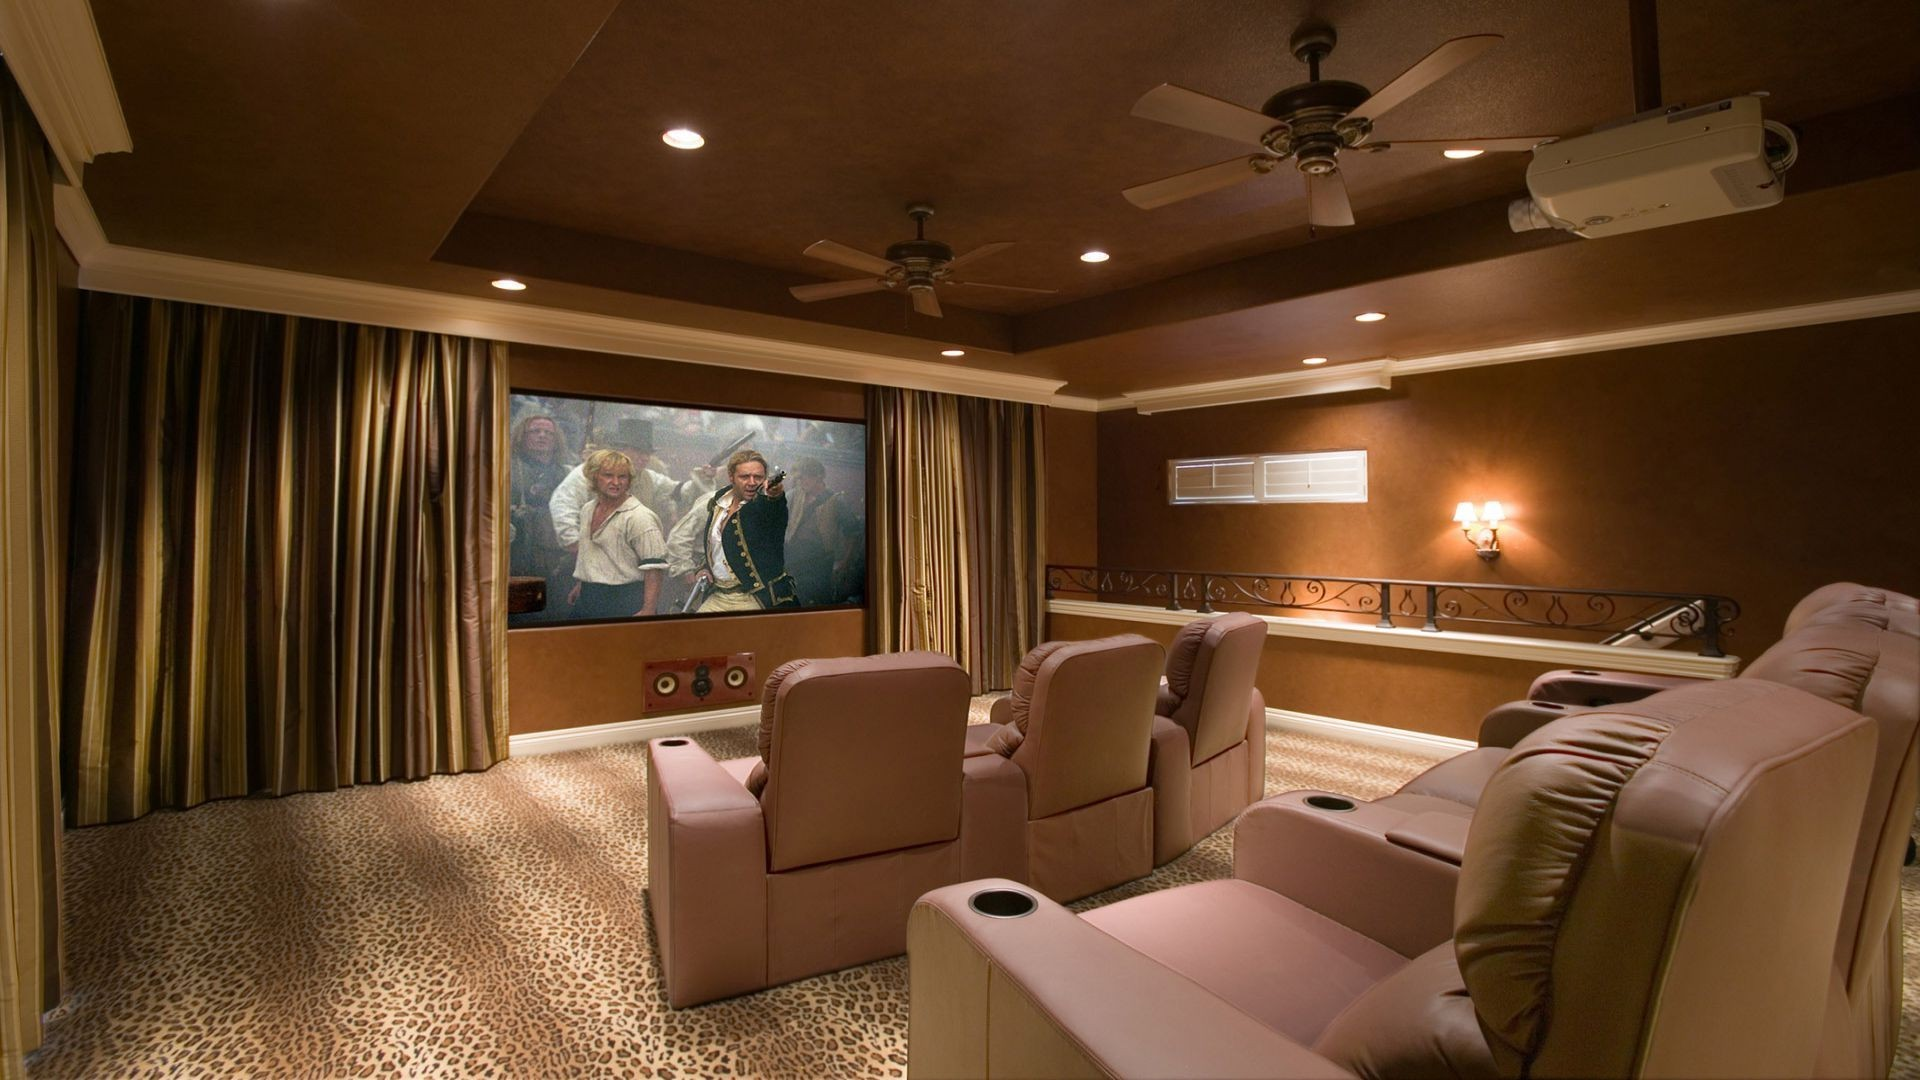 Home theatre wallpaper wallpapersafari for Home wallpaper 0